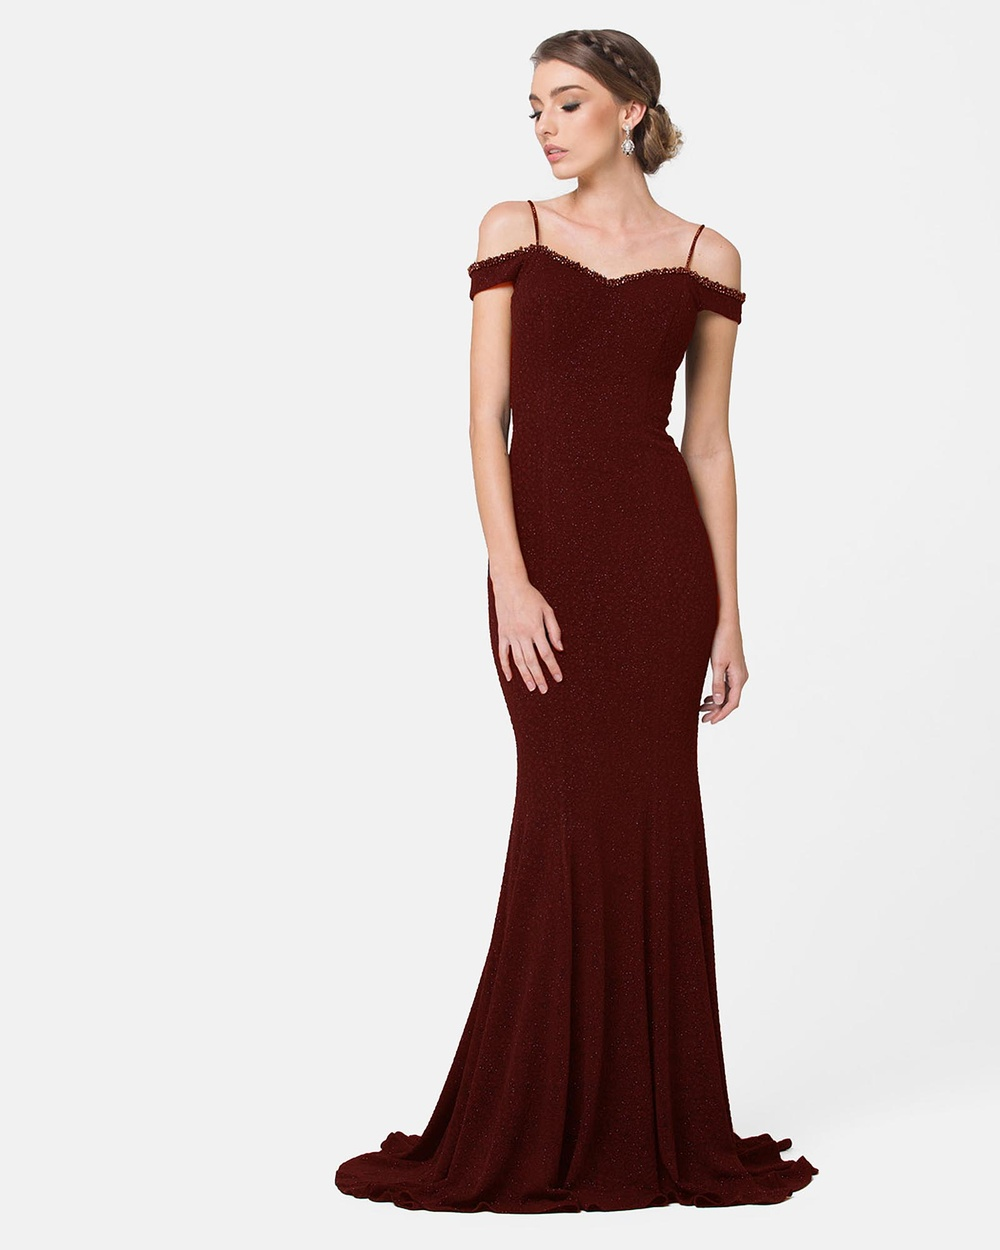 Tania Olsen Designs Alicia Dress Bridesmaid Dresses Cherry Alicia Dress